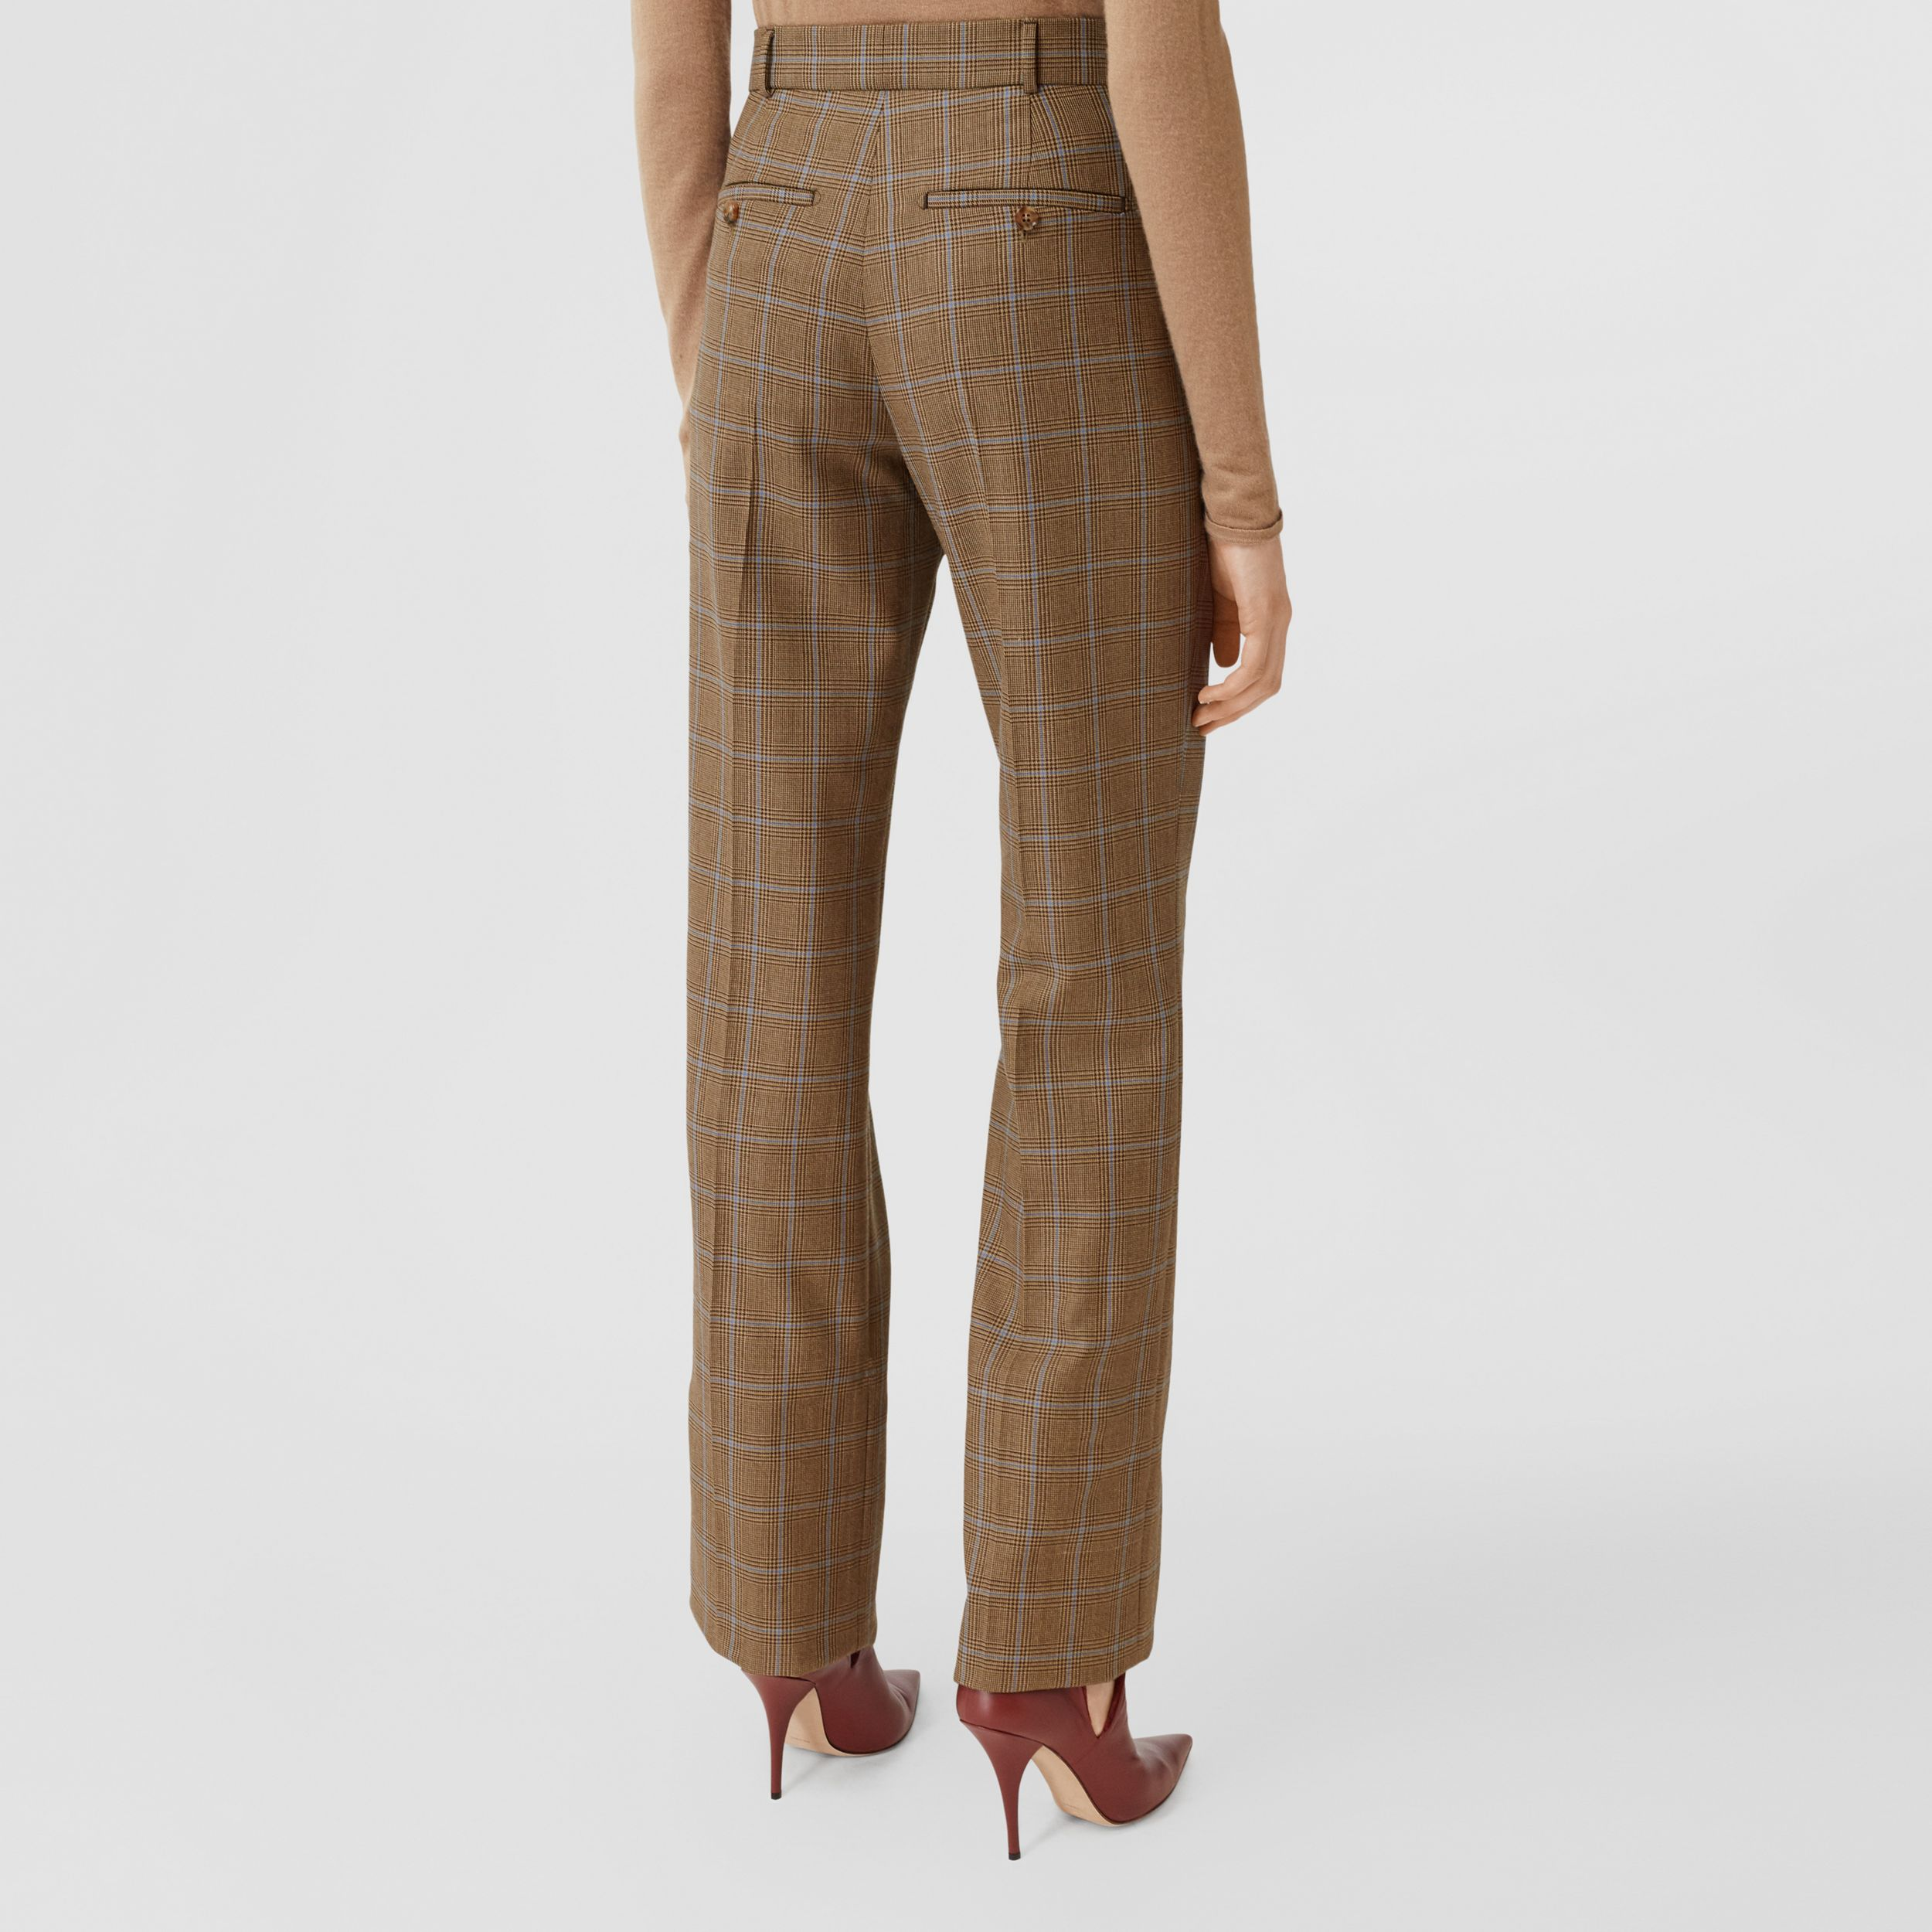 Prince of Wales Check Wool Tailored Trousers in Birch Brown - Women | Burberry - 3